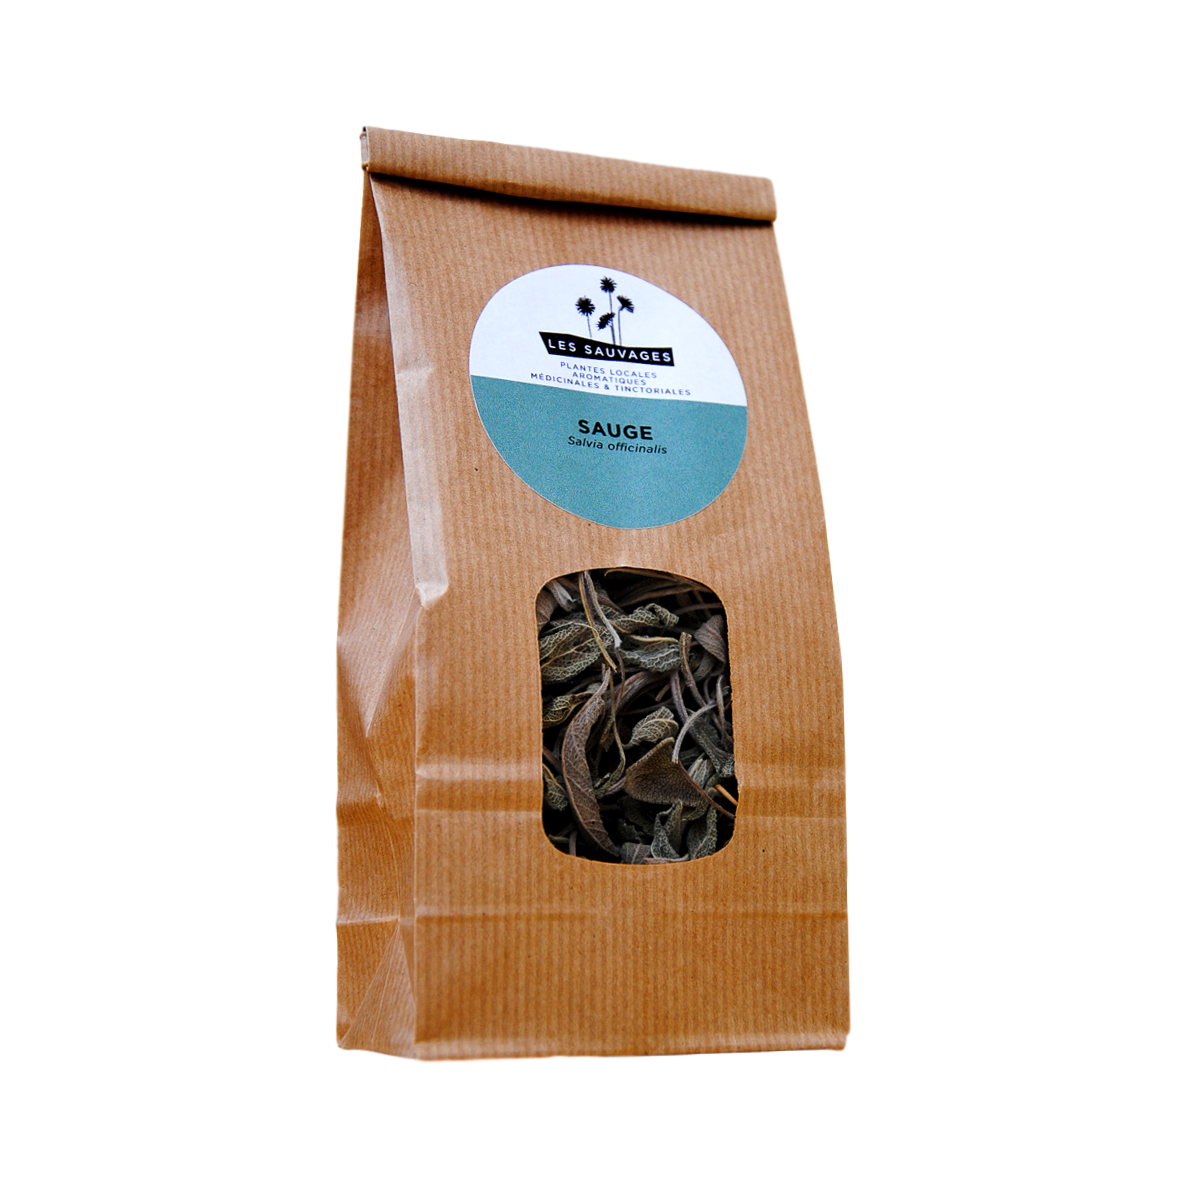 Tisane de Sauge Officinale sauvage